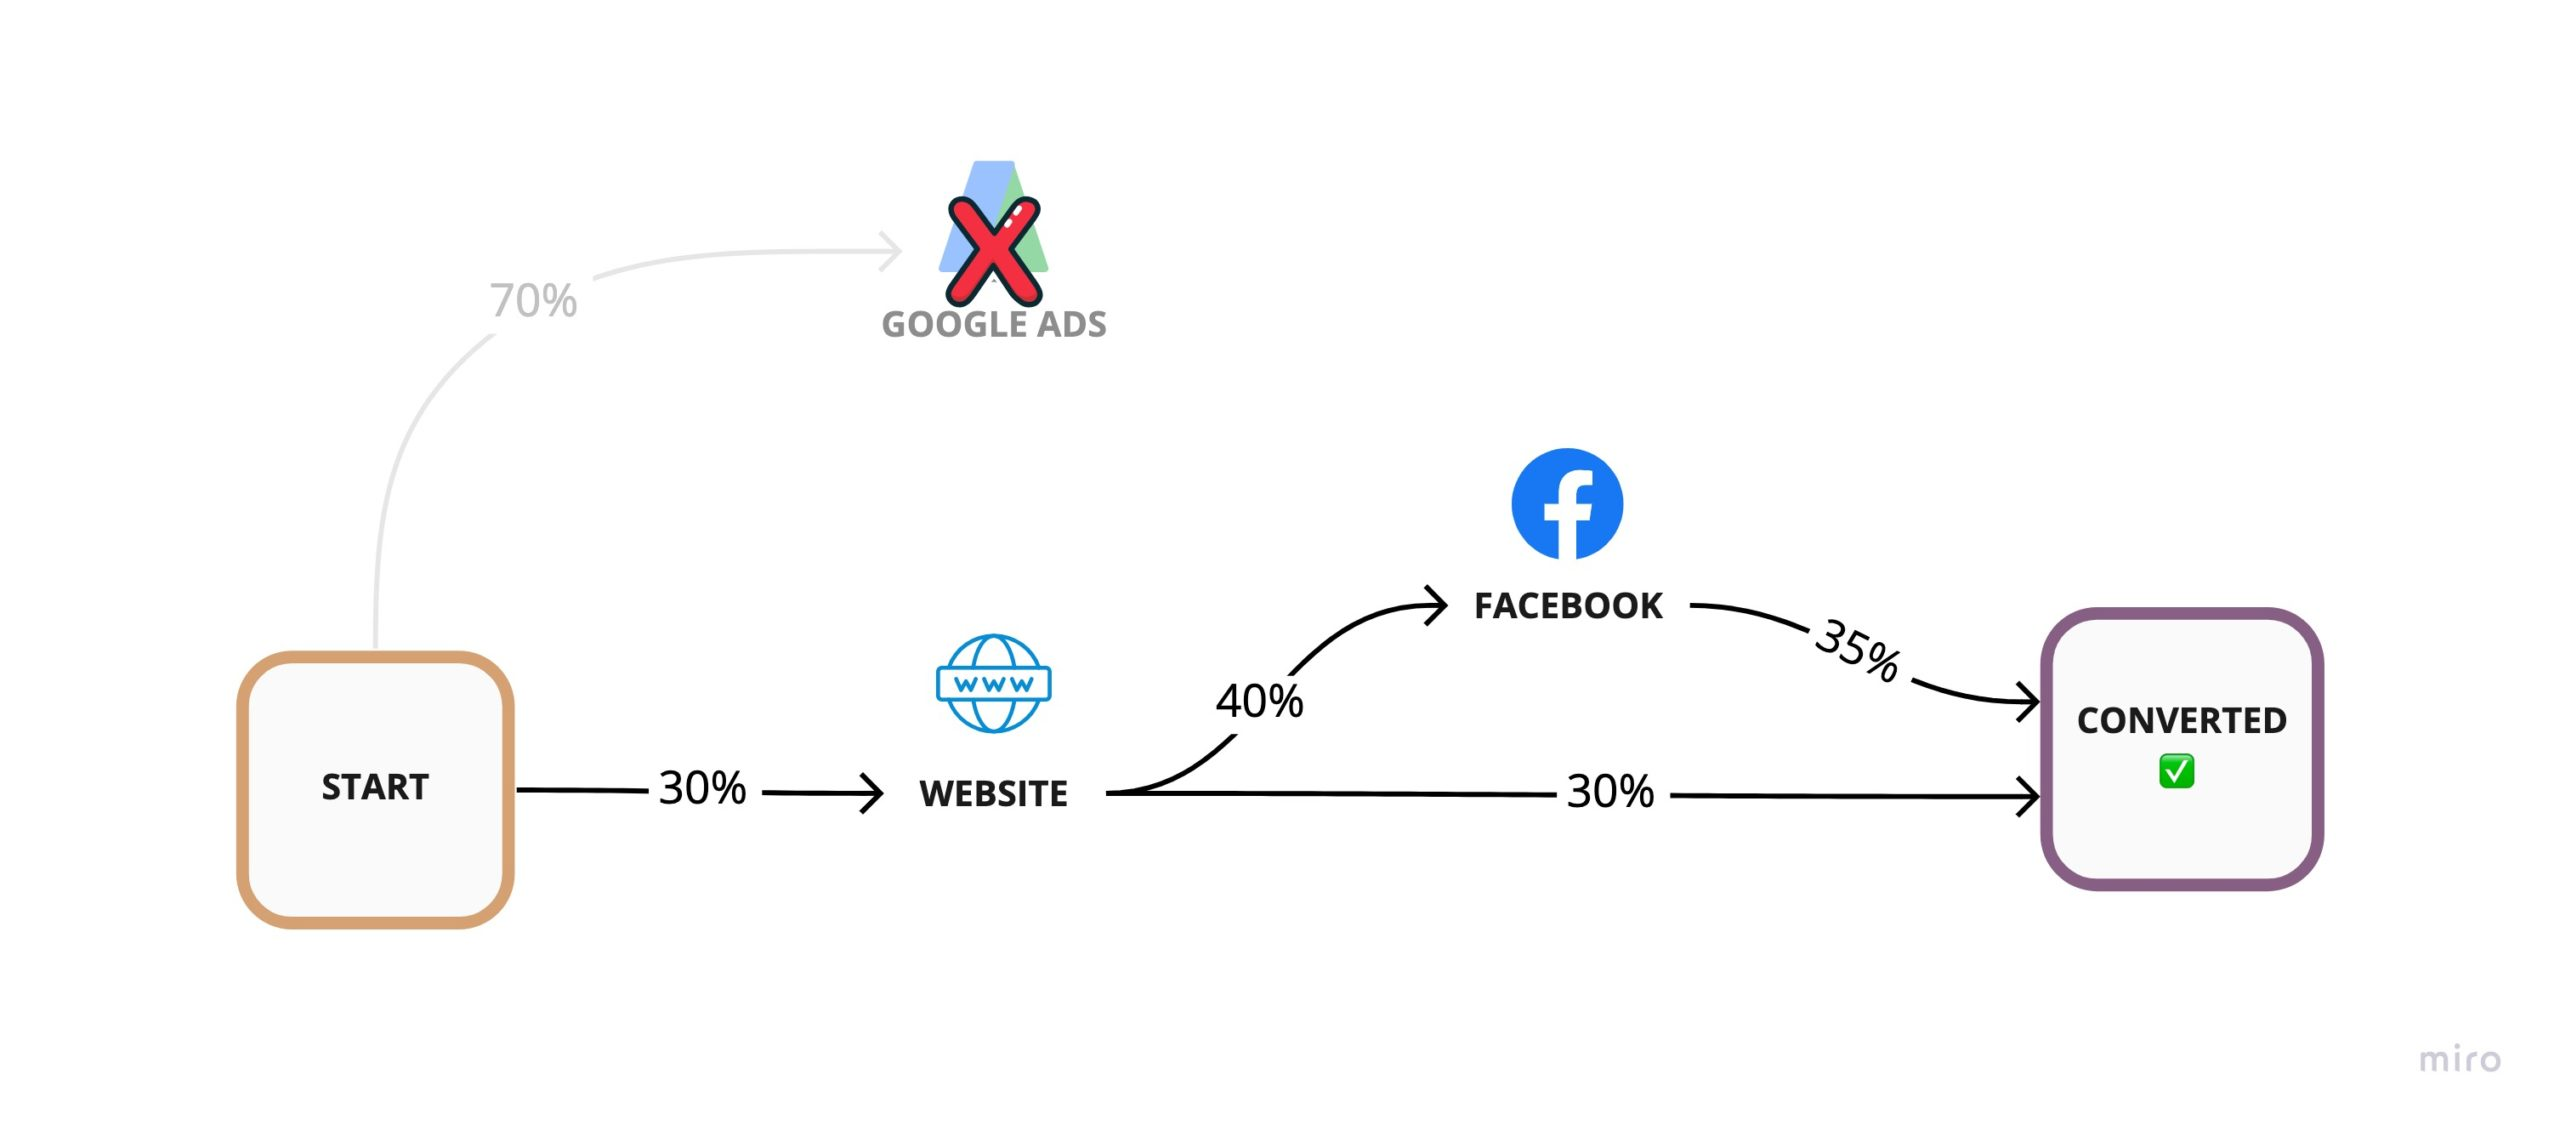 Hypothetical removal of Google Ads from our customer journey